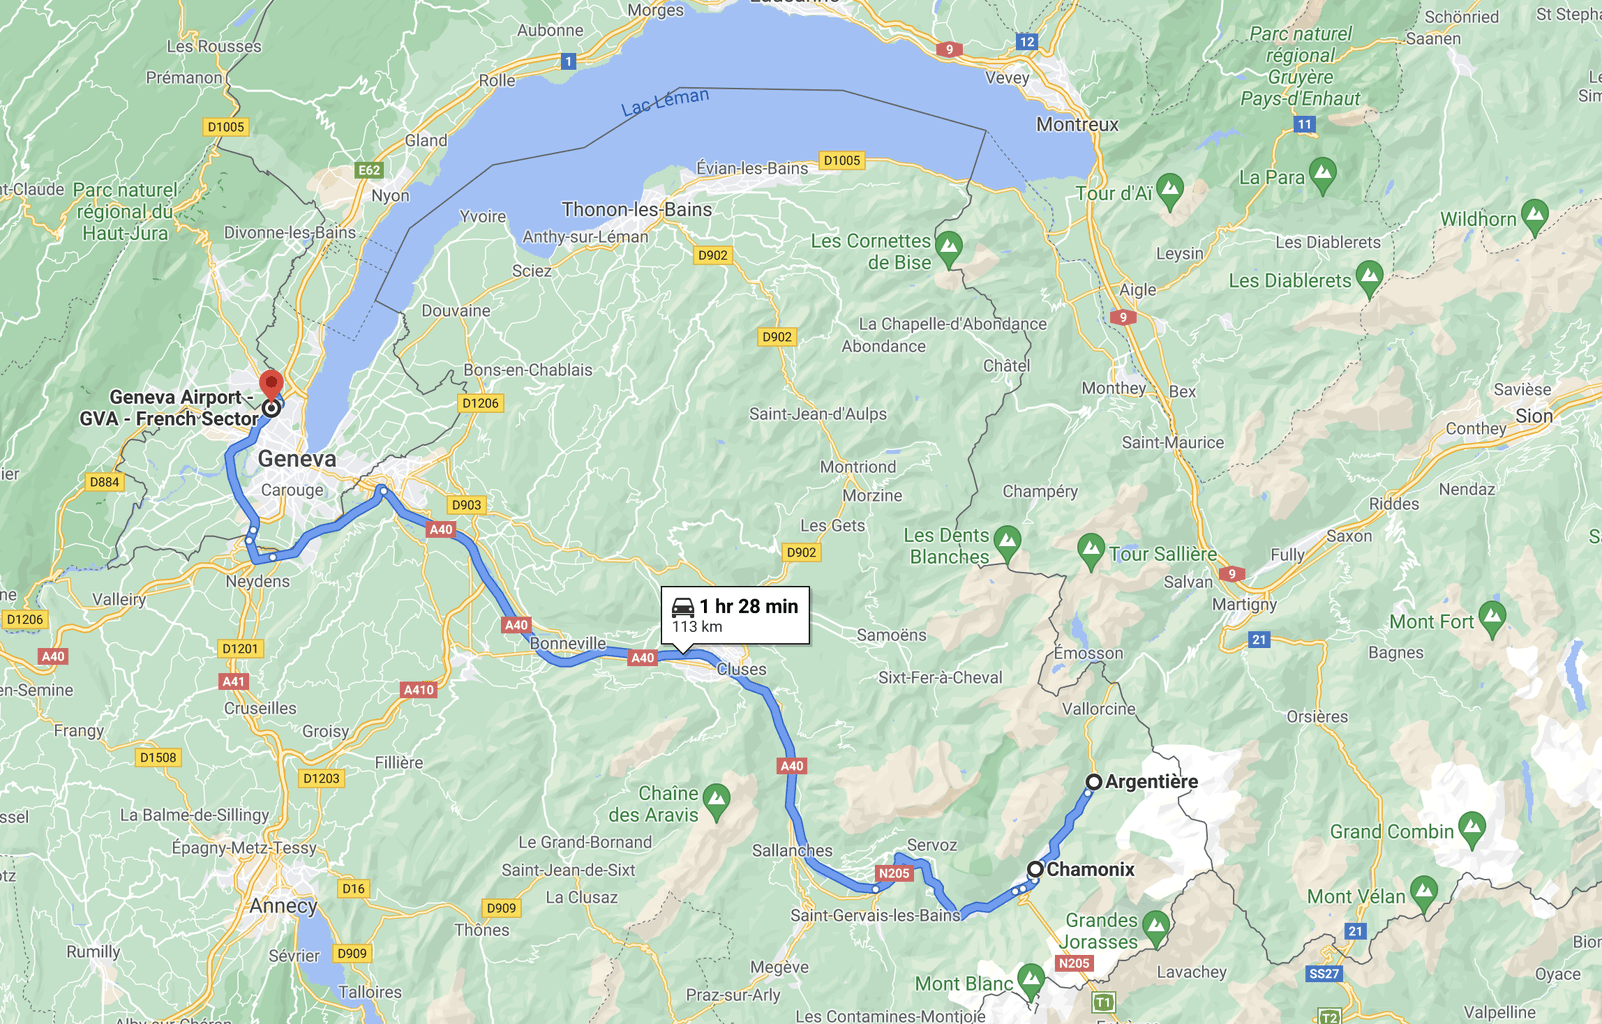 Horizontal map of the Alps region of Europe bordering Italy, France and Switzerland. The map shows the route from Geneva to Argentière, France.